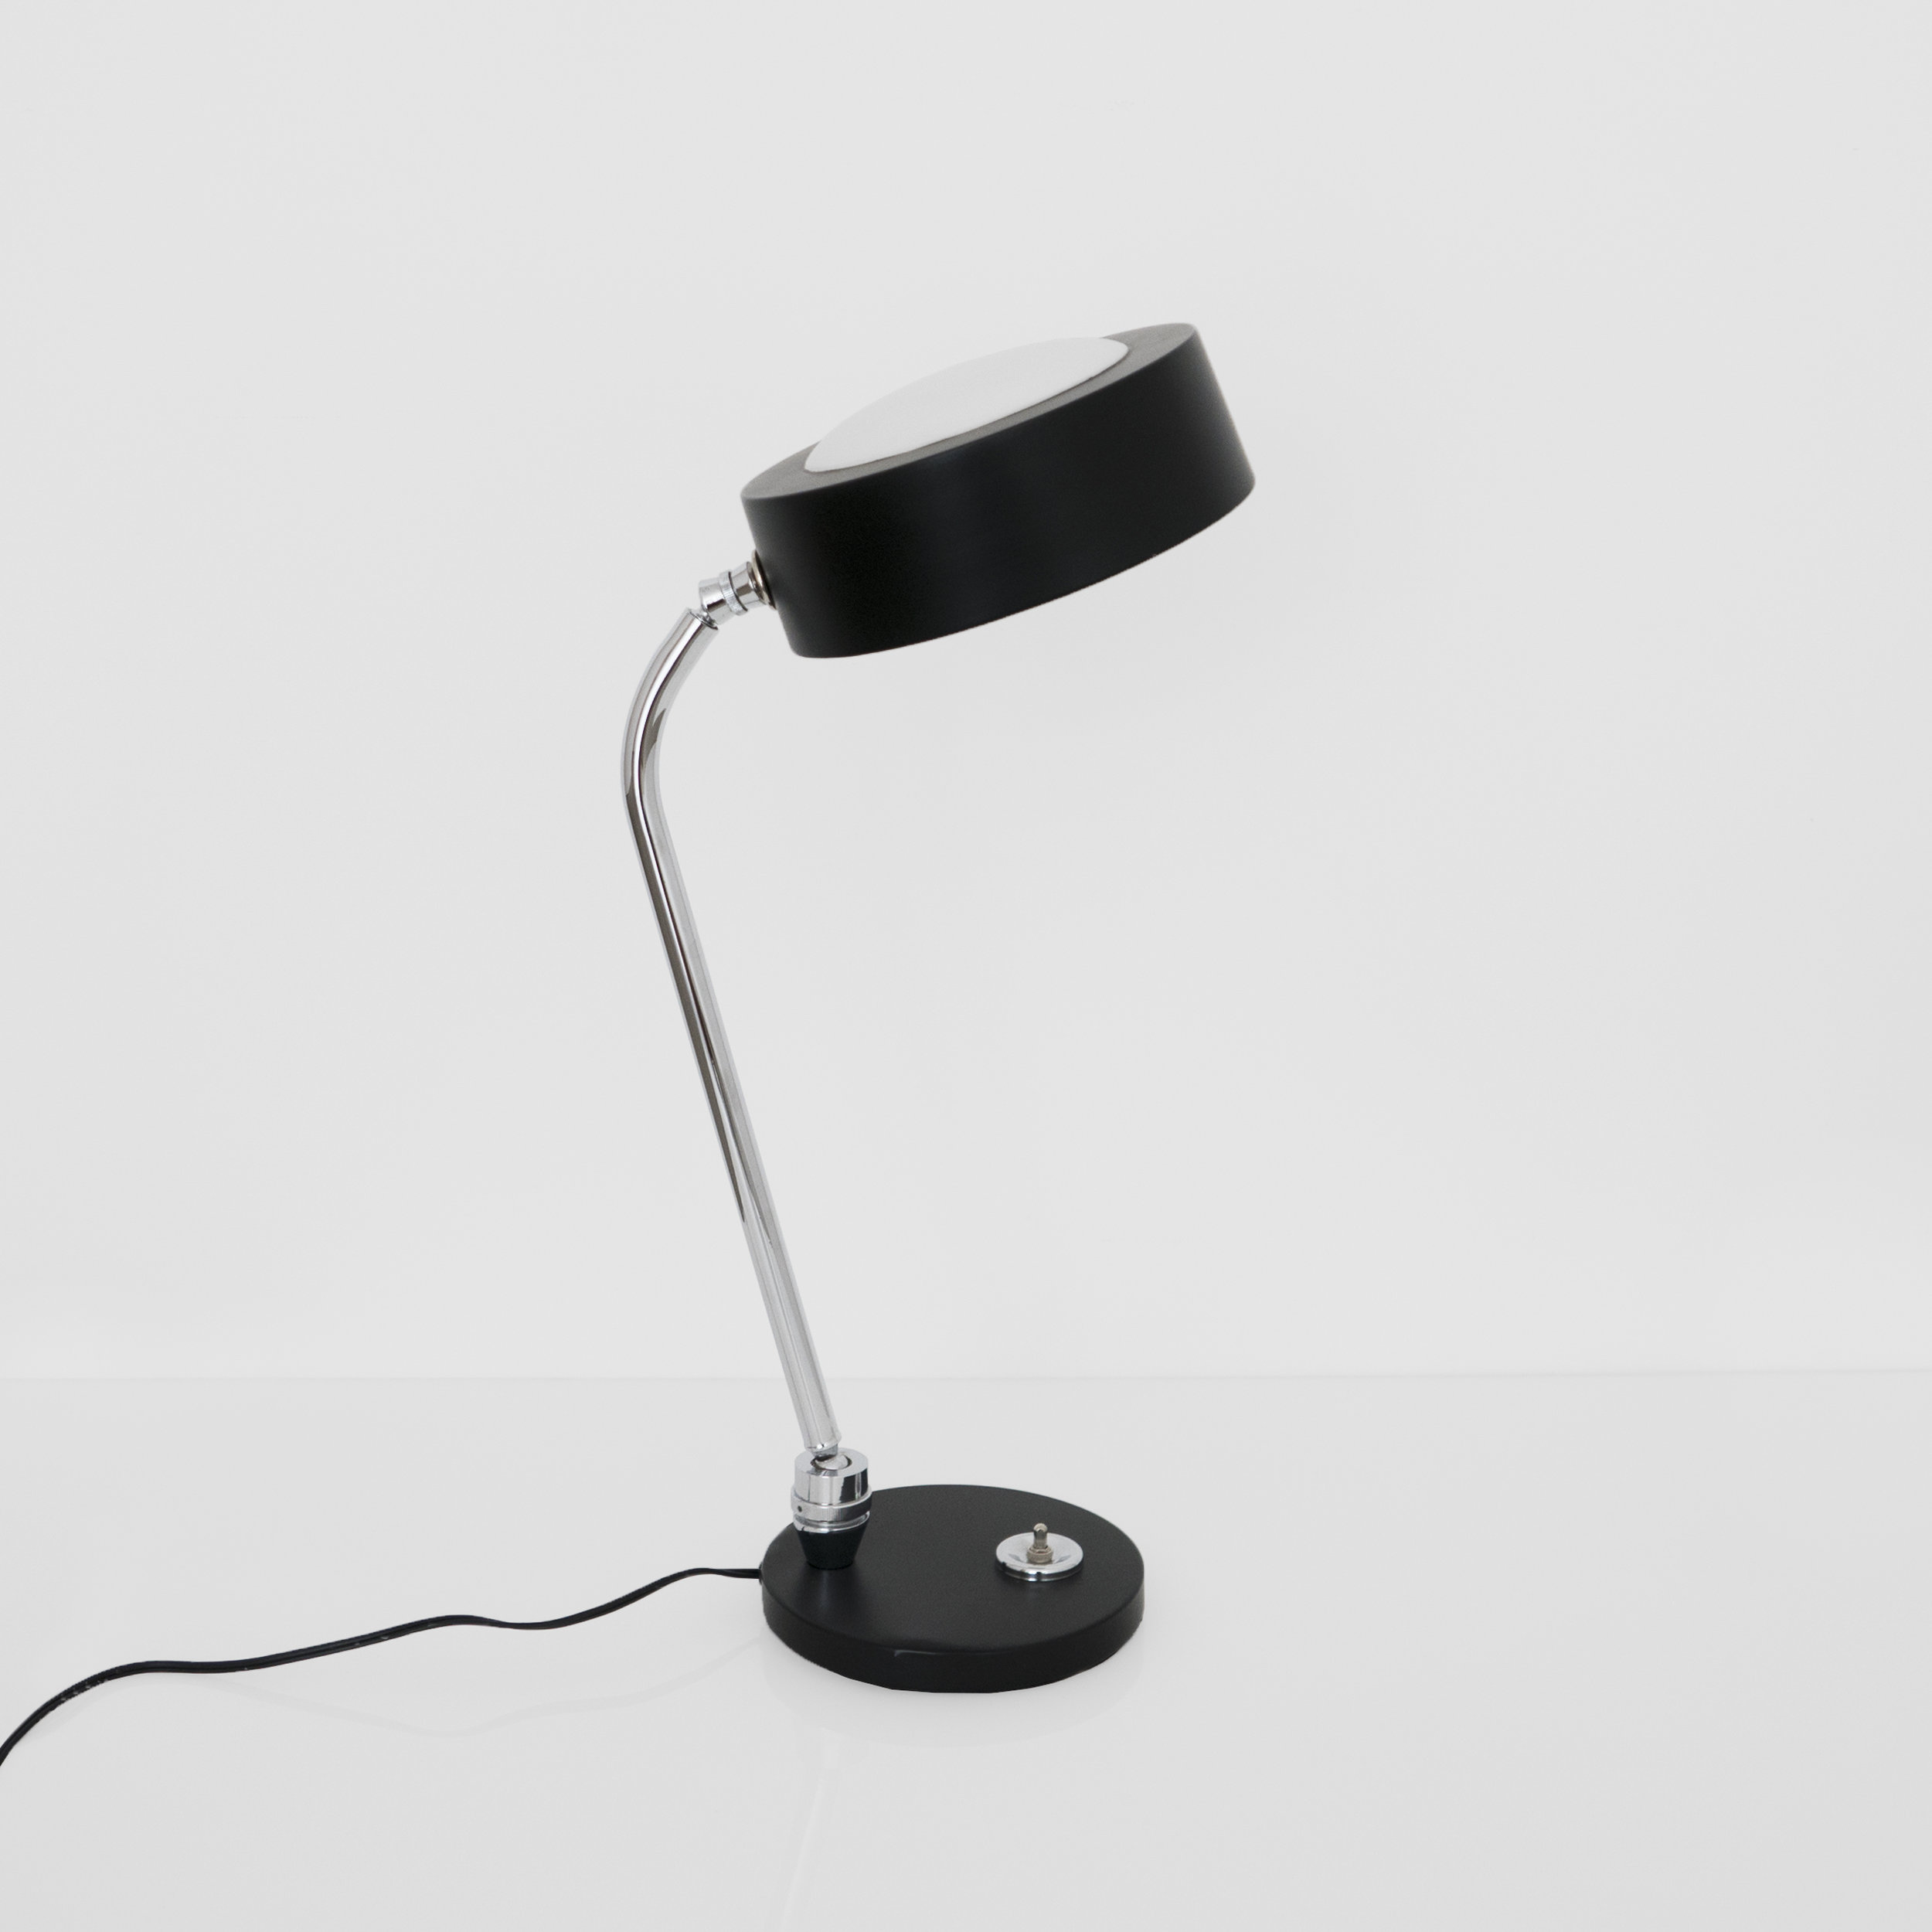 Charlotte Perriand, Table Lamp, c. 1960s, Chromed and lacquered metal, 21.5H x 7 Diameter inches_2.jpg